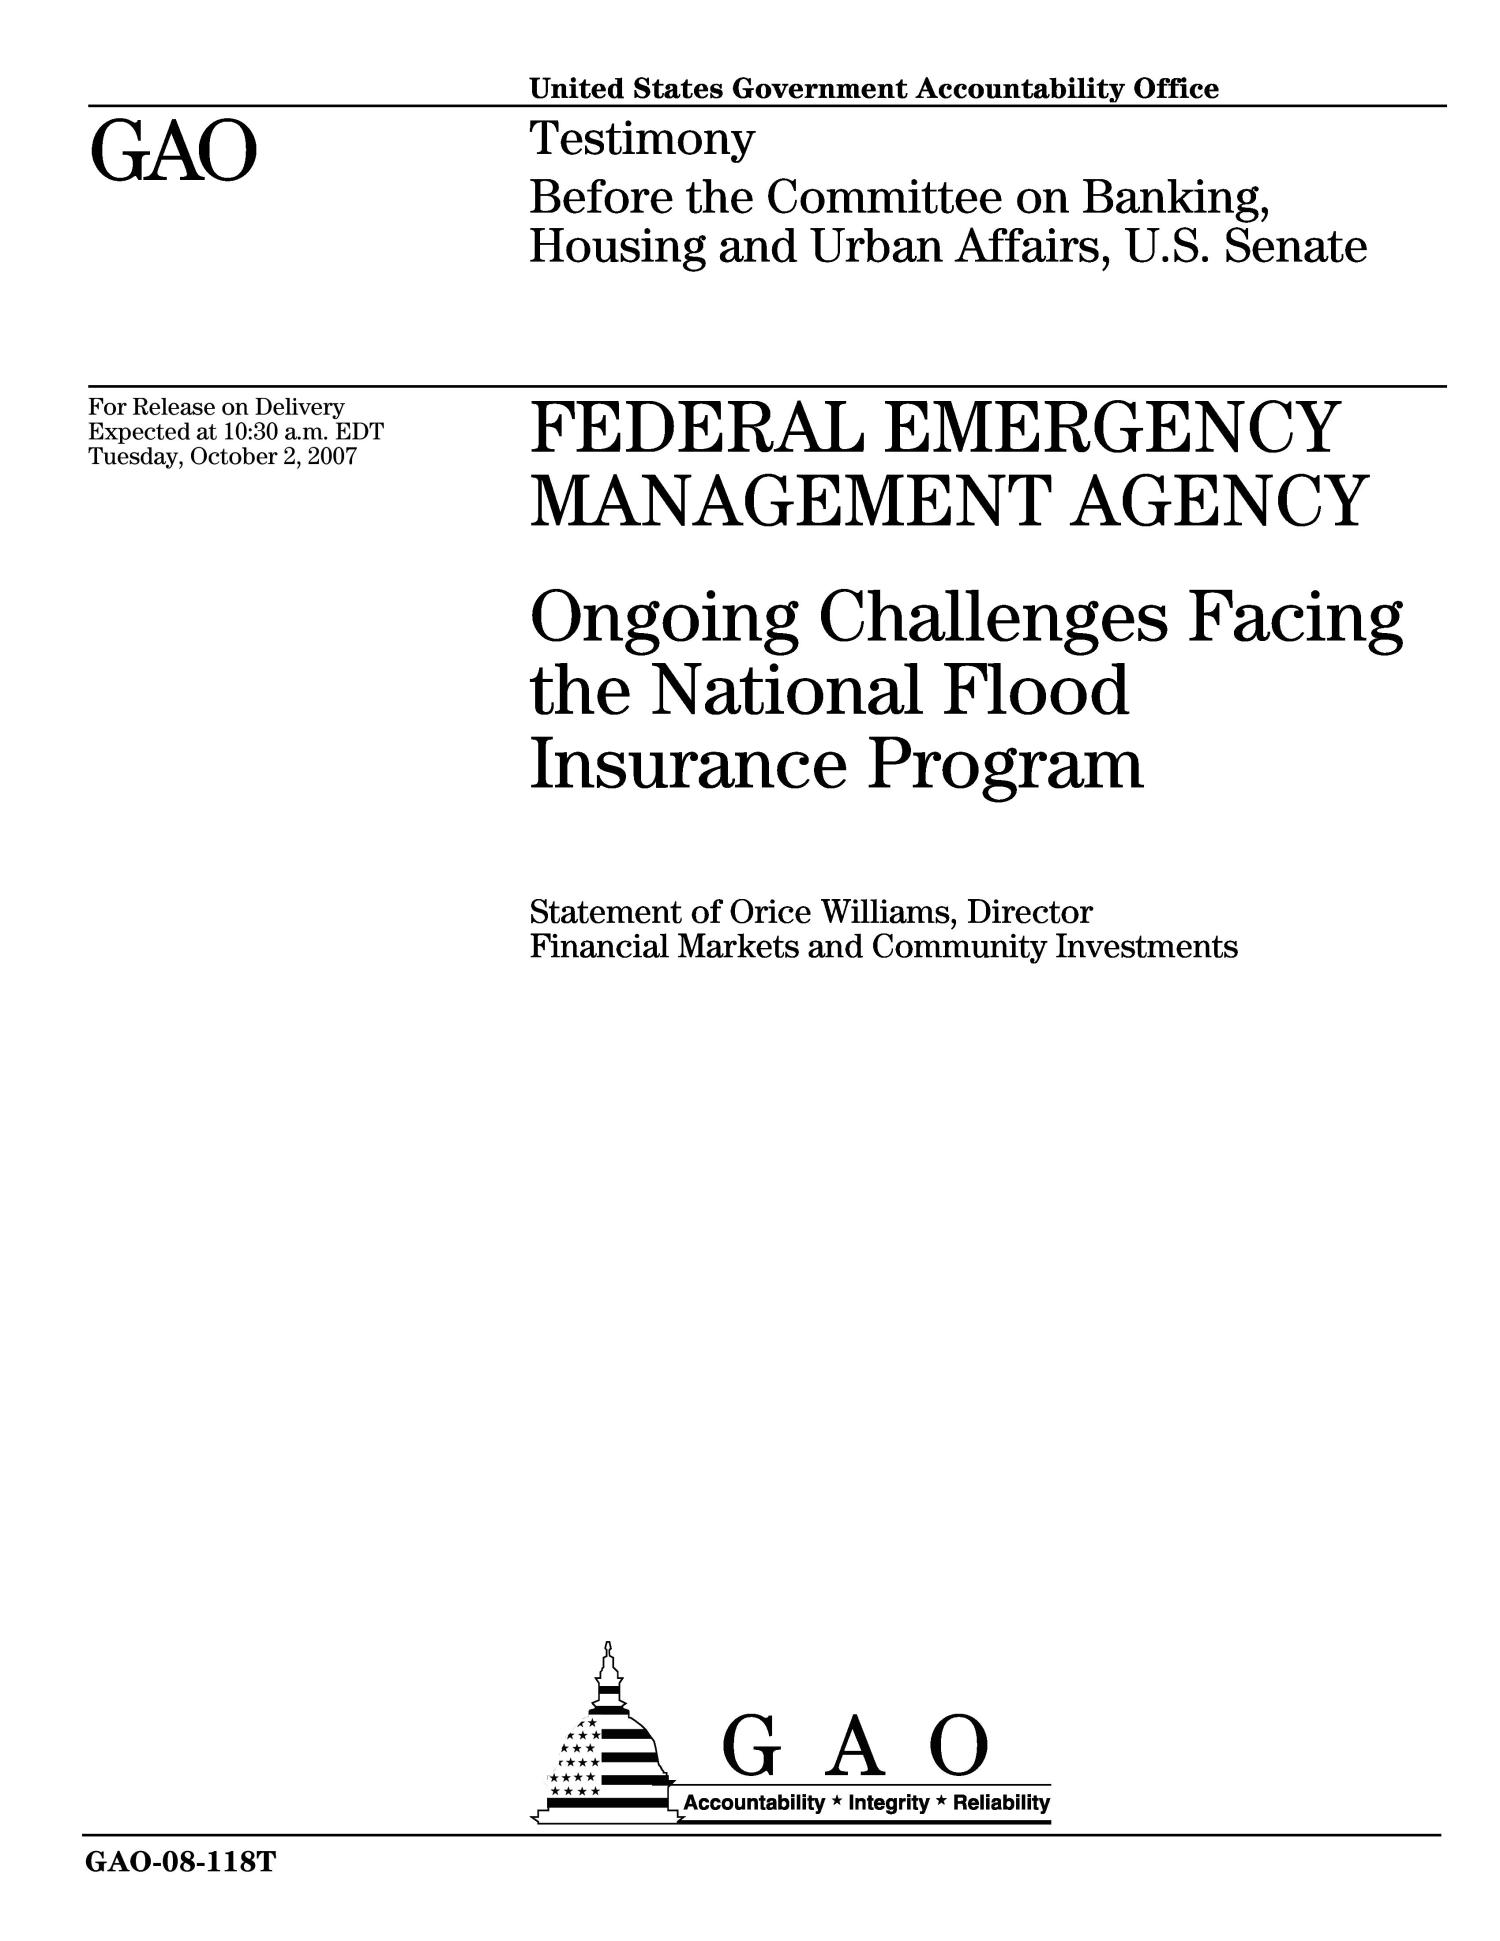 Federal Emergency Management Agency: Ongoing Challenges Facing the National Flood Insurance Program                                                                                                      [Sequence #]: 1 of 20